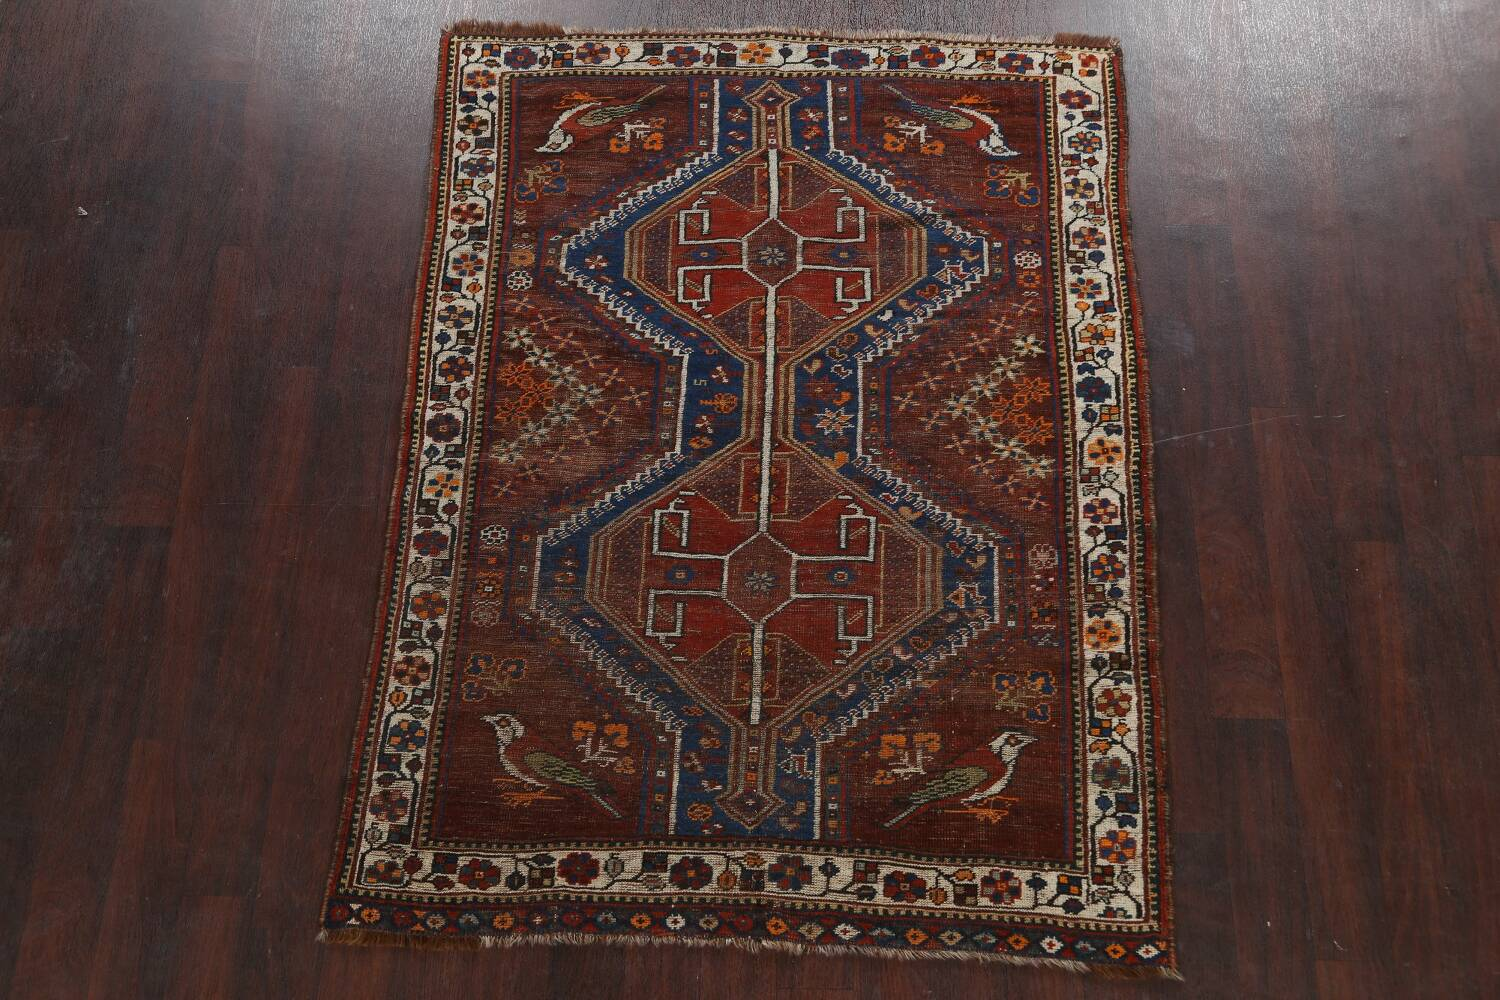 Pre-1900 Antique Ghashghaie Persian Area Rug 5x6 image 2